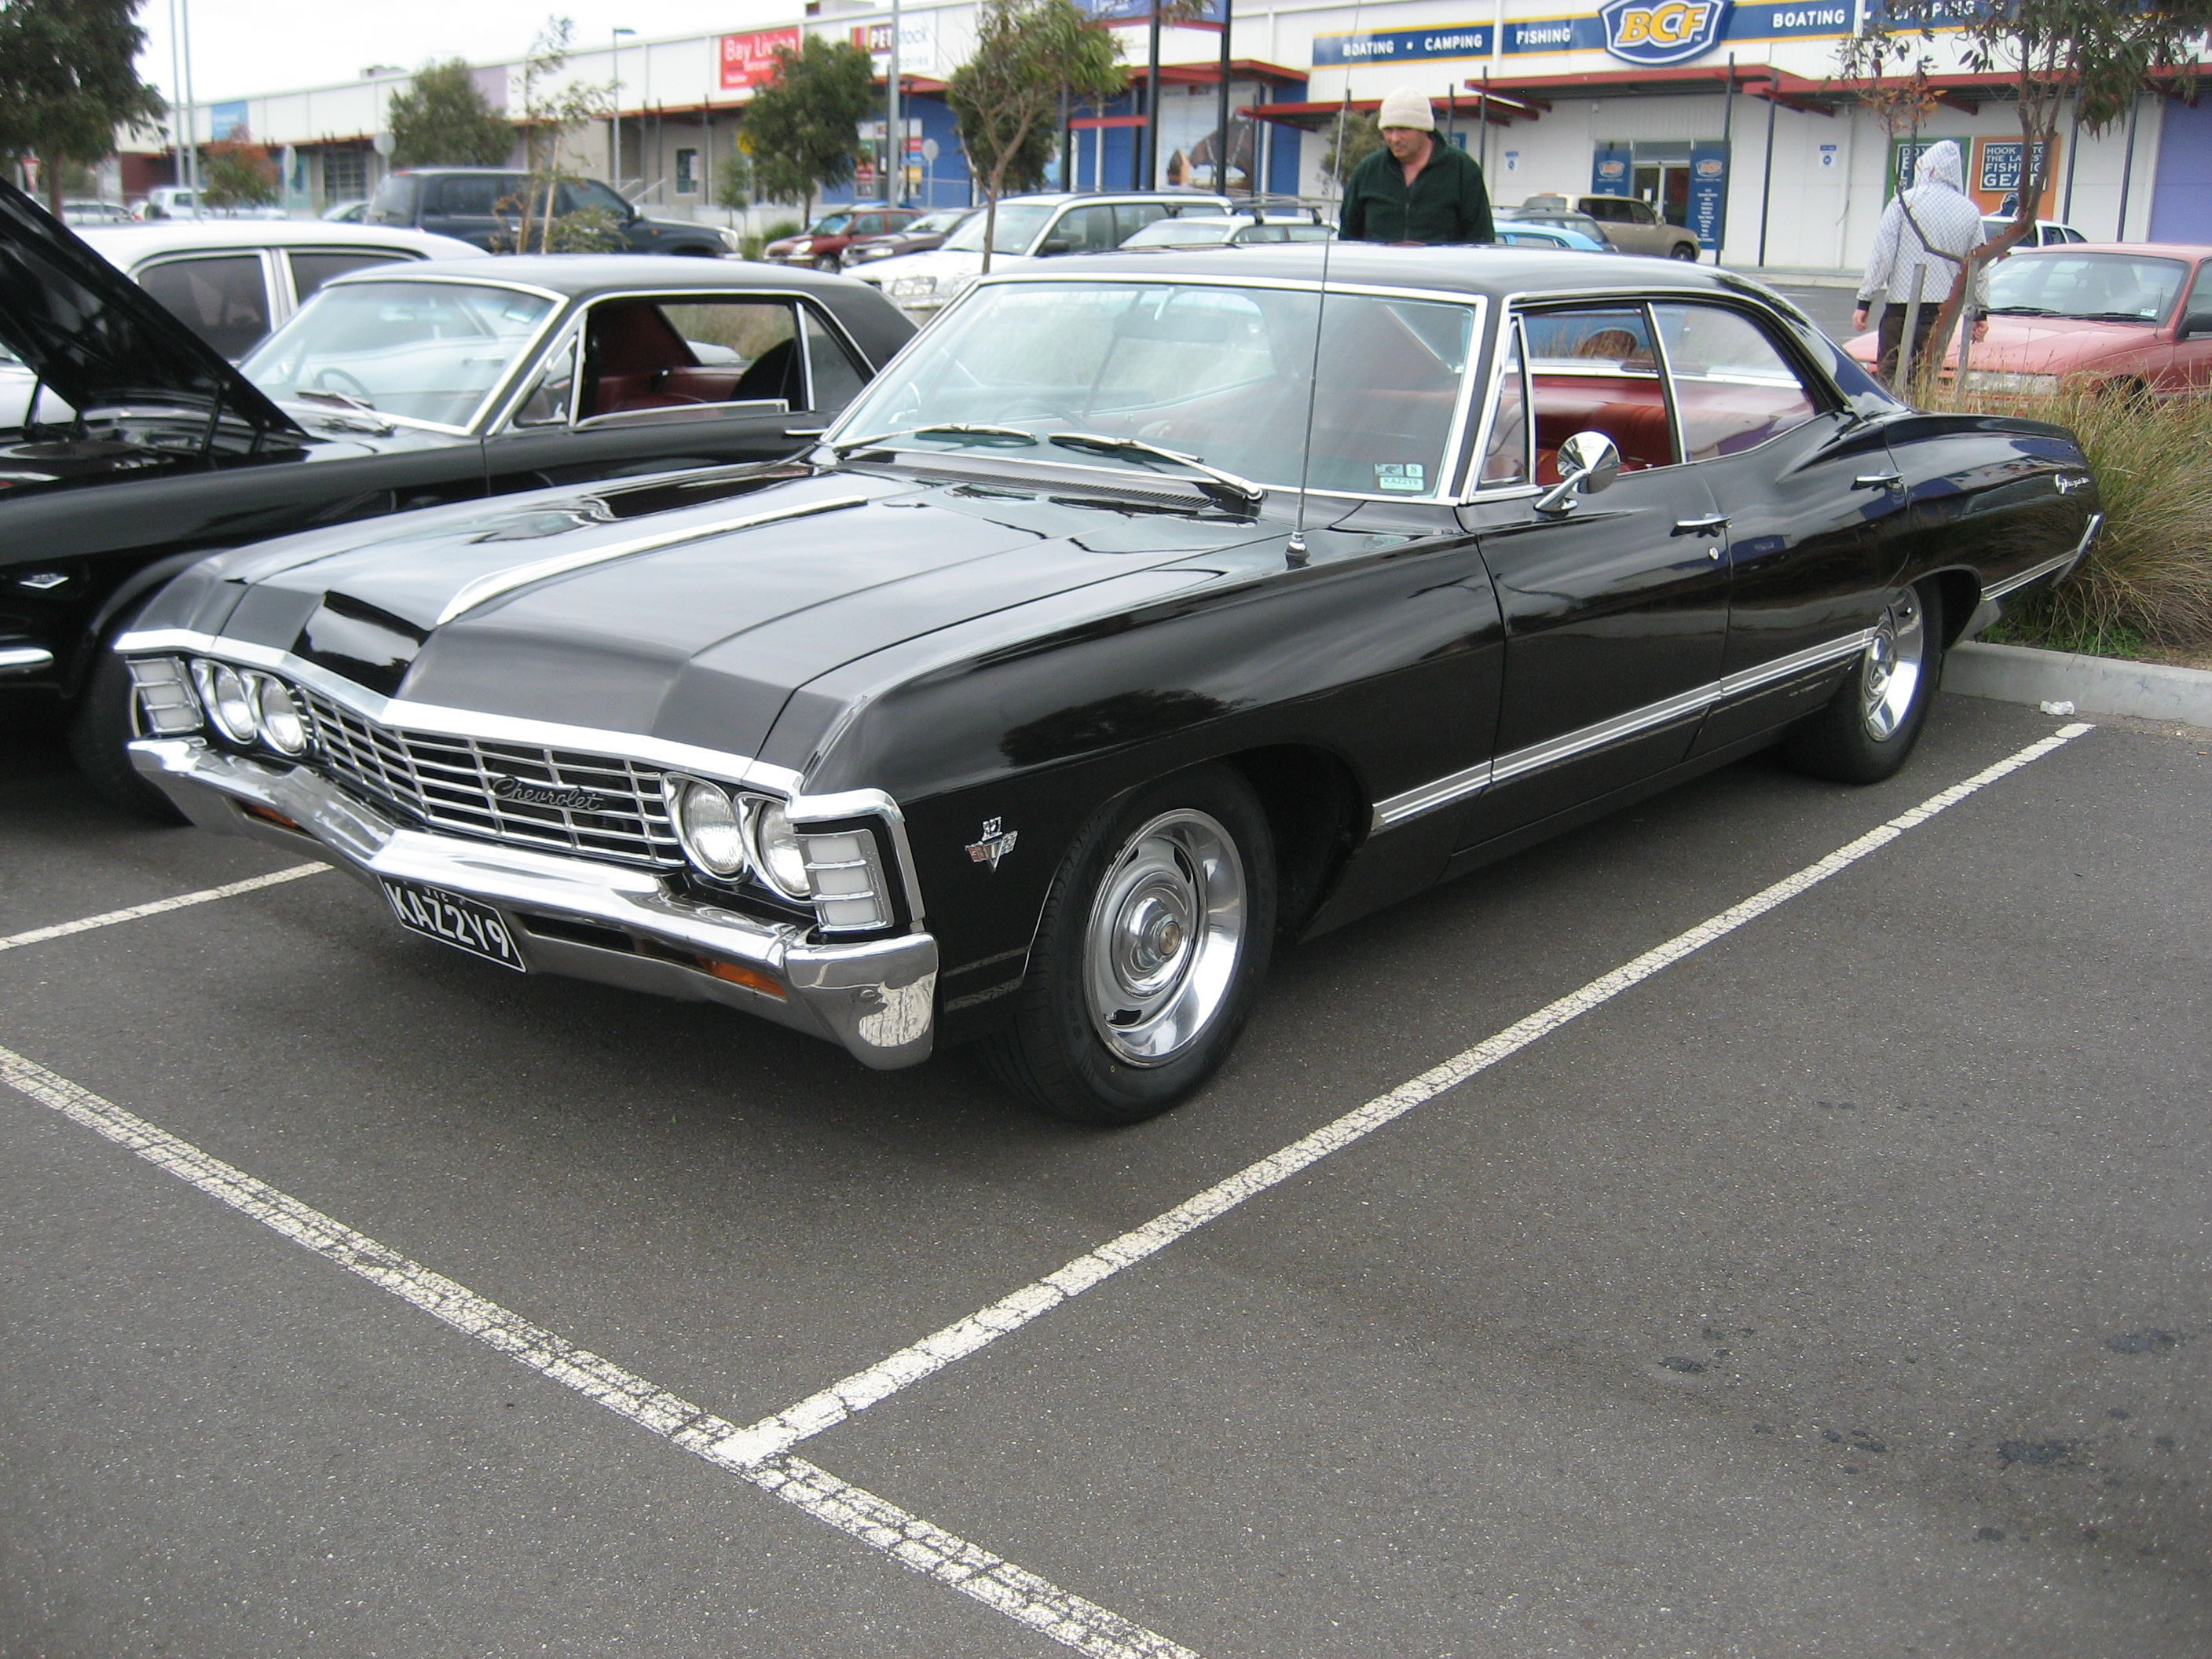 1967 chevrolet impala information and photos momentcar. Black Bedroom Furniture Sets. Home Design Ideas